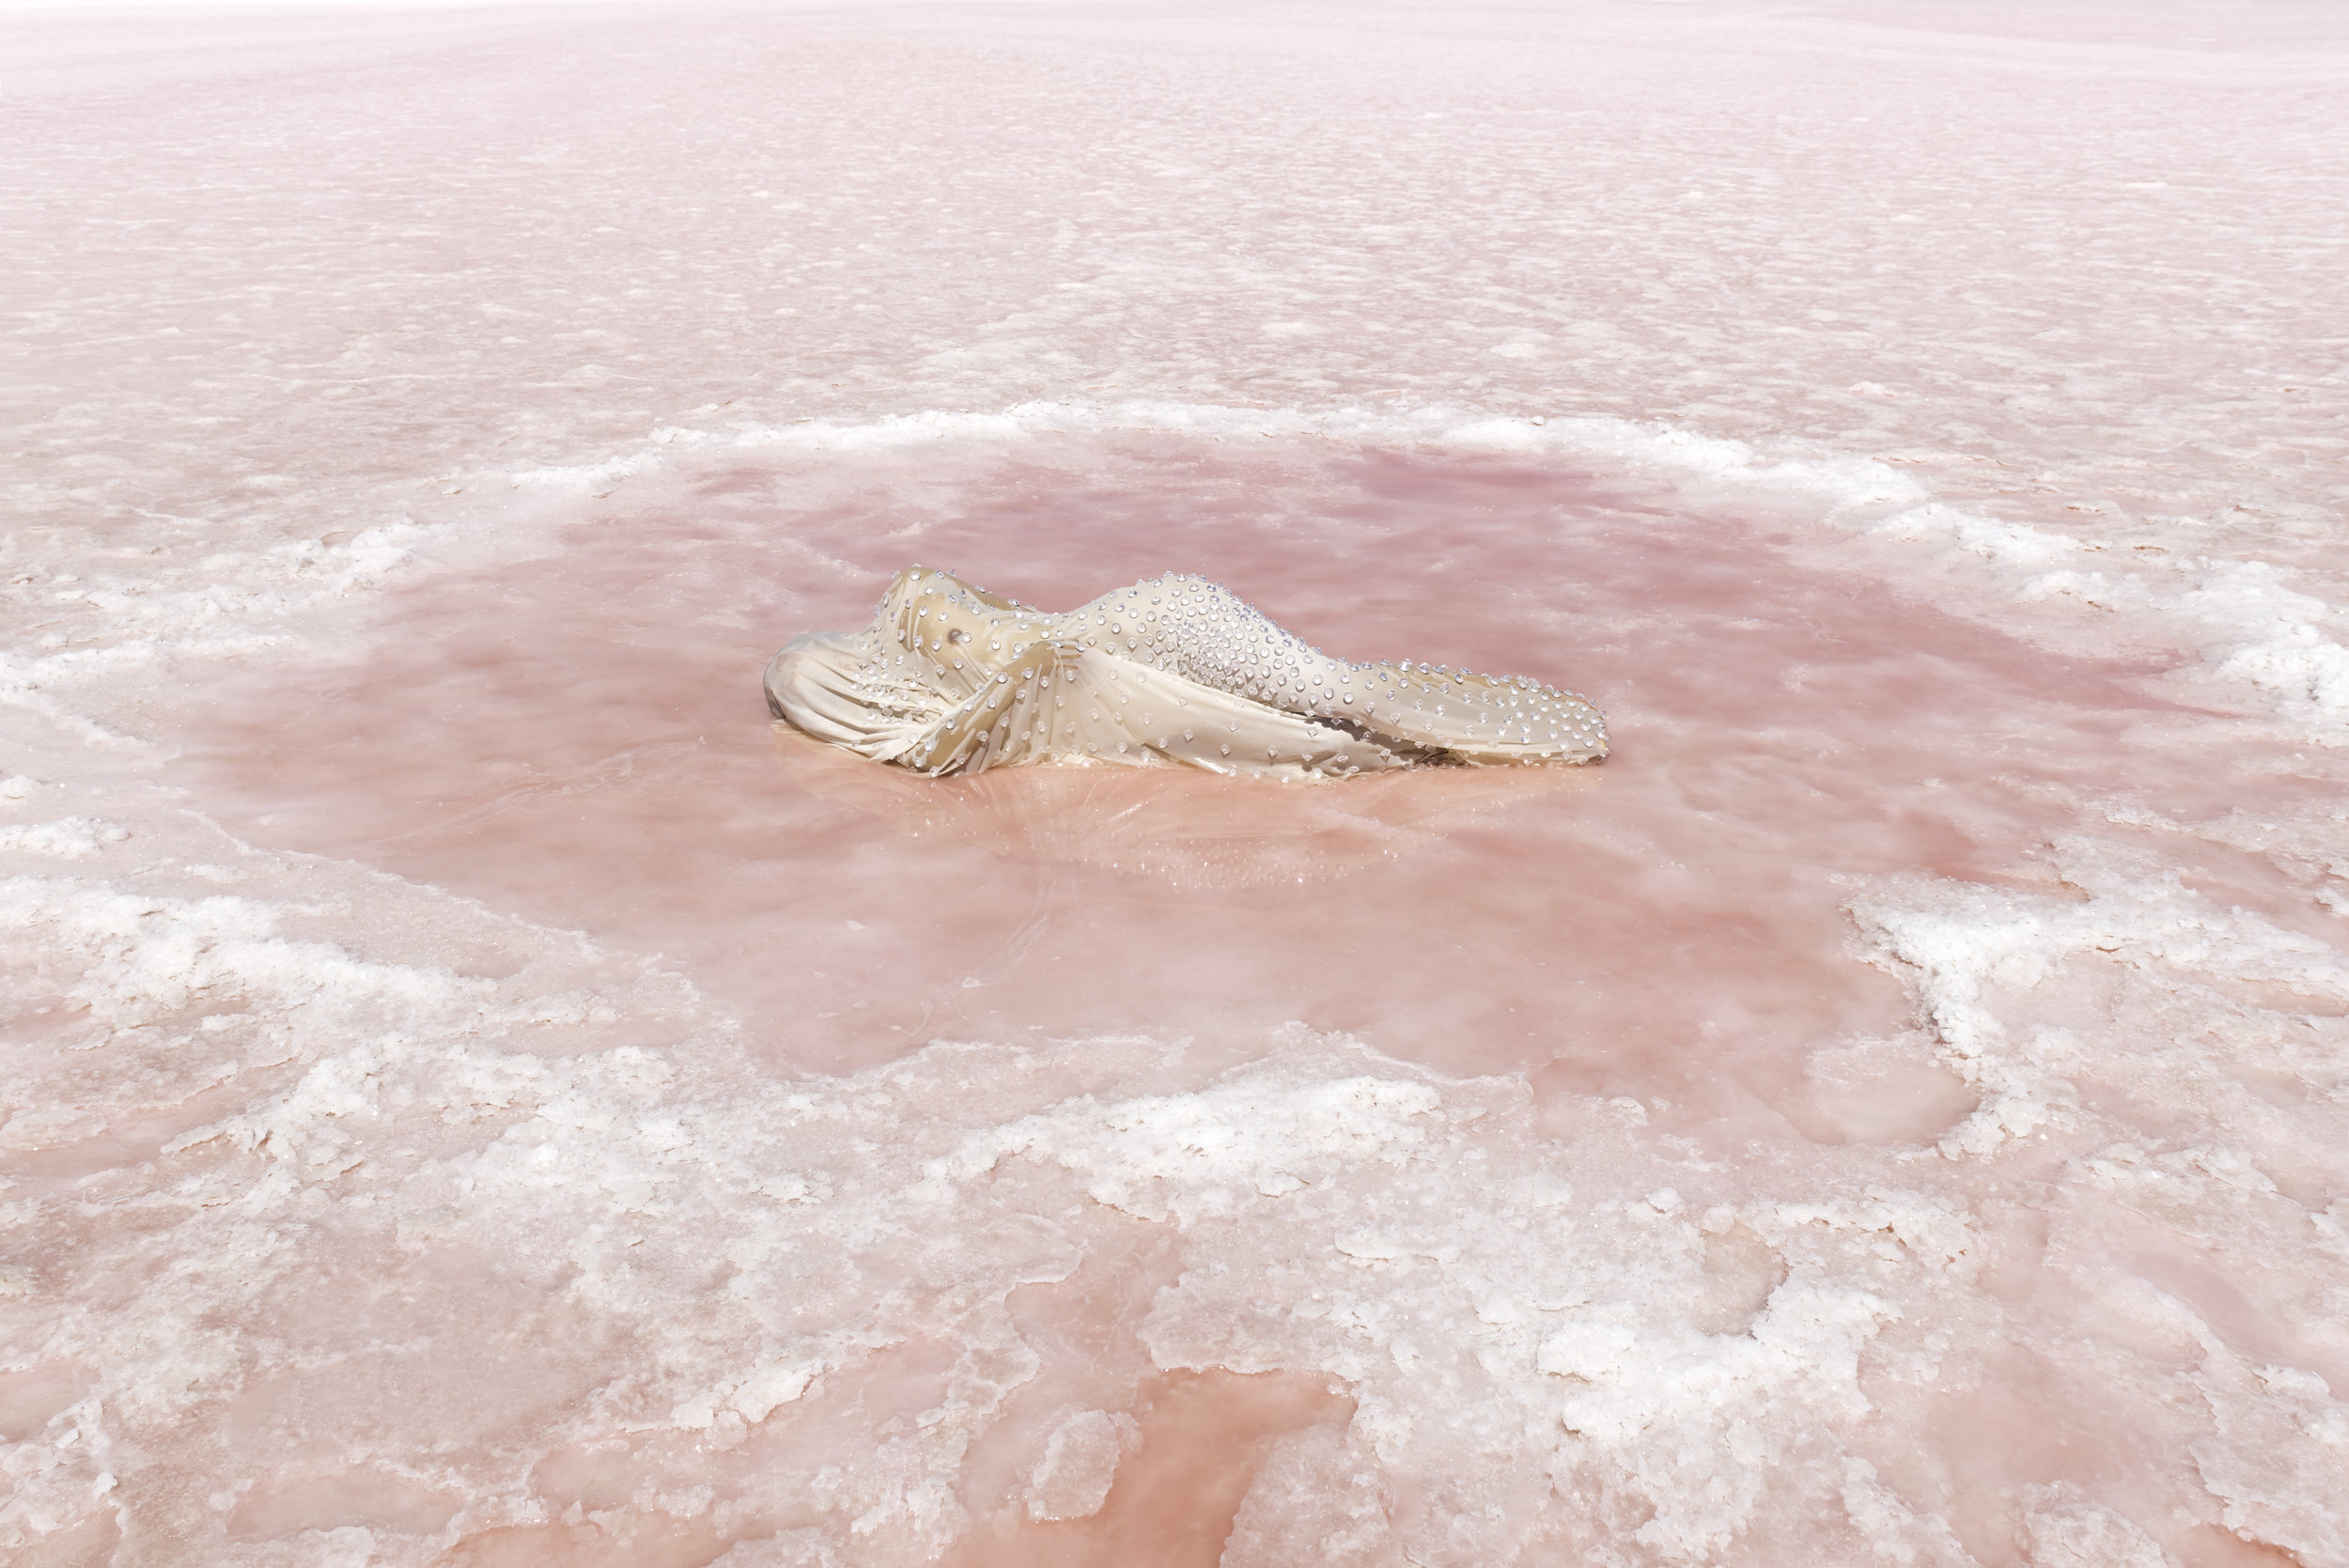 Honey Long & Prue Stent,  Salt Pool,  2018, archival pigment print, 106 x 159 cm. Courtesy the artists and ARC ONE Gallery.